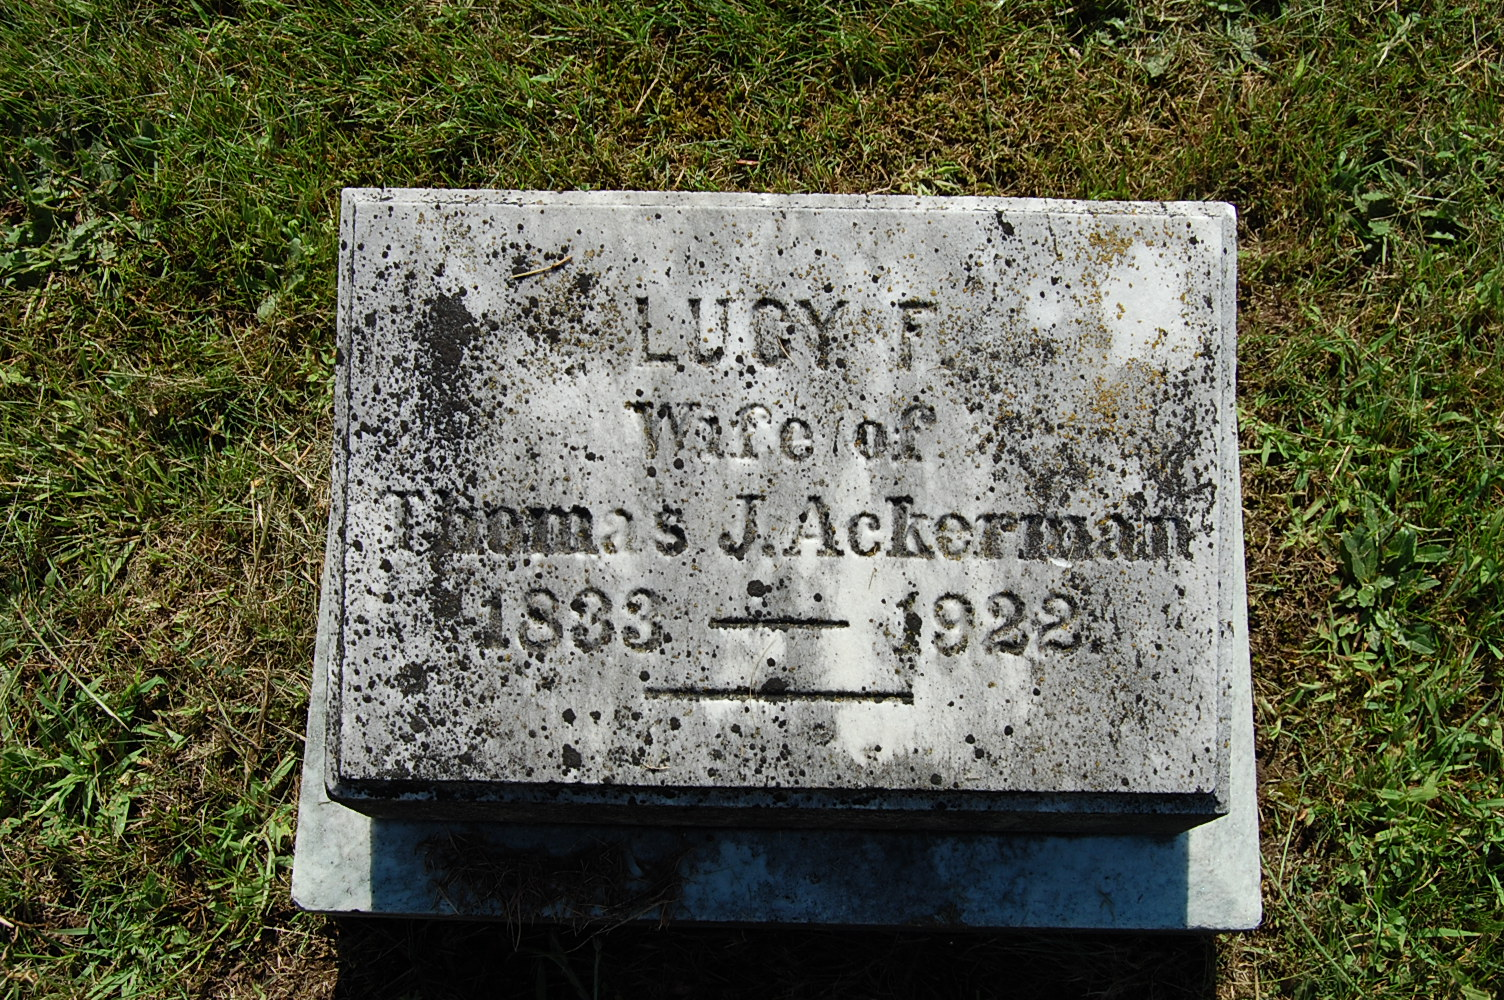 Interred Image: 18_SecA_103_6_AckermanLucyF.JPG